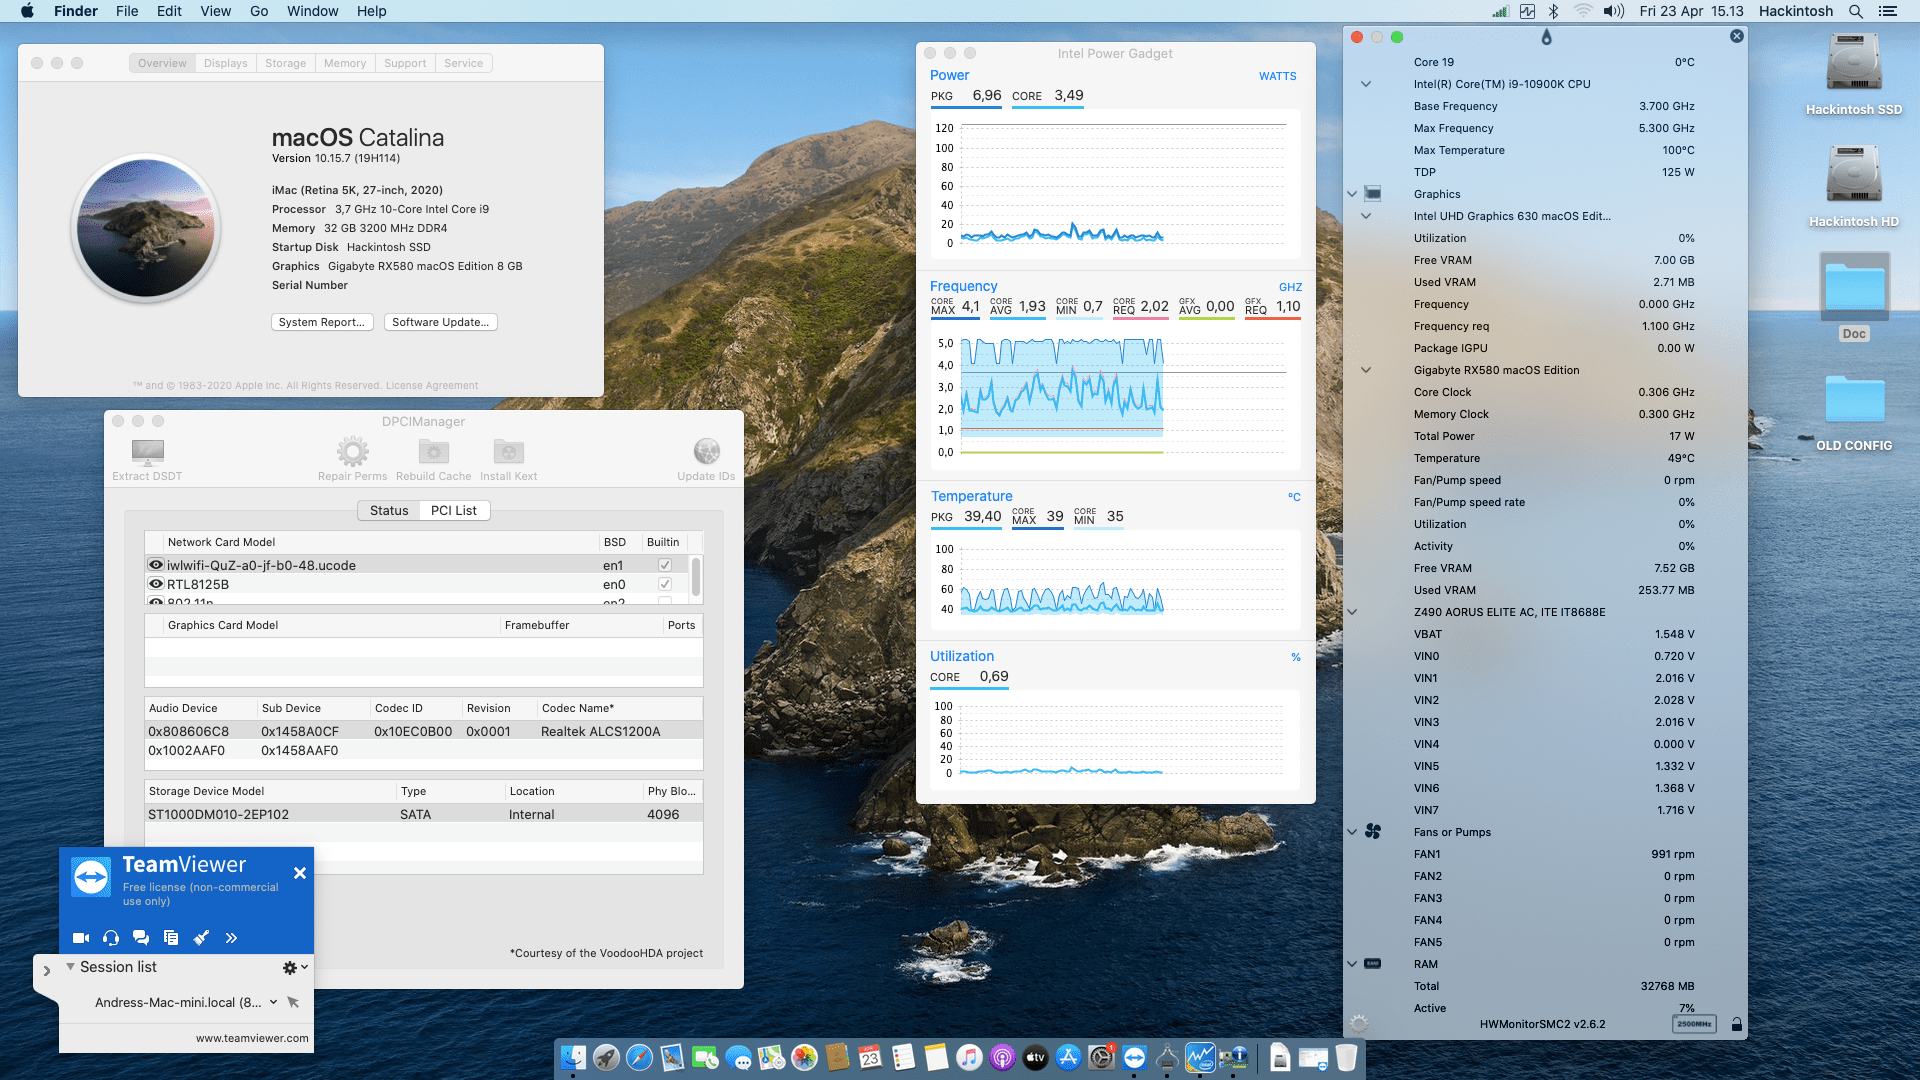 Success Hackintosh macOS Catalina 10.15.7 Build 19H114 in Gigabyte Z490 Aorus Elite AC + Intel Core i9 10900K + Gigabyte RX 580